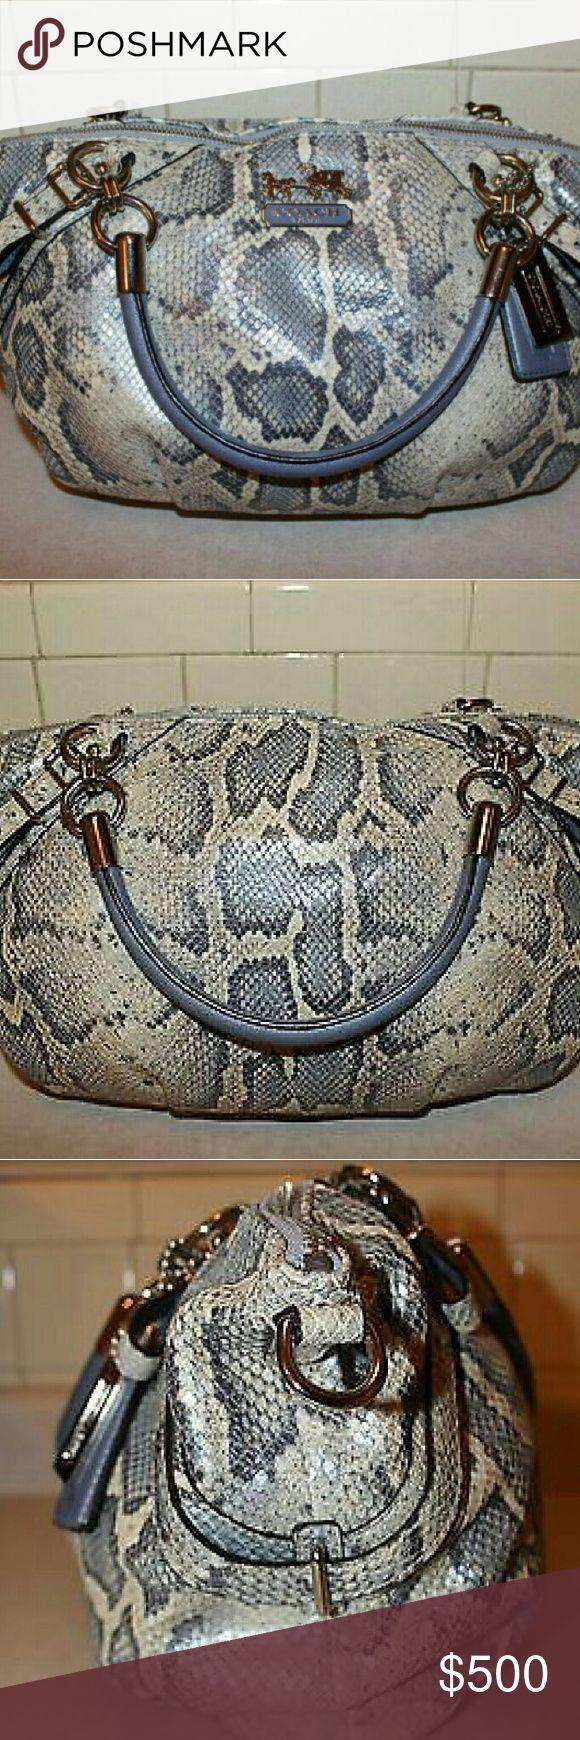 Wedding - Coach Python Embossed Leather Satchel